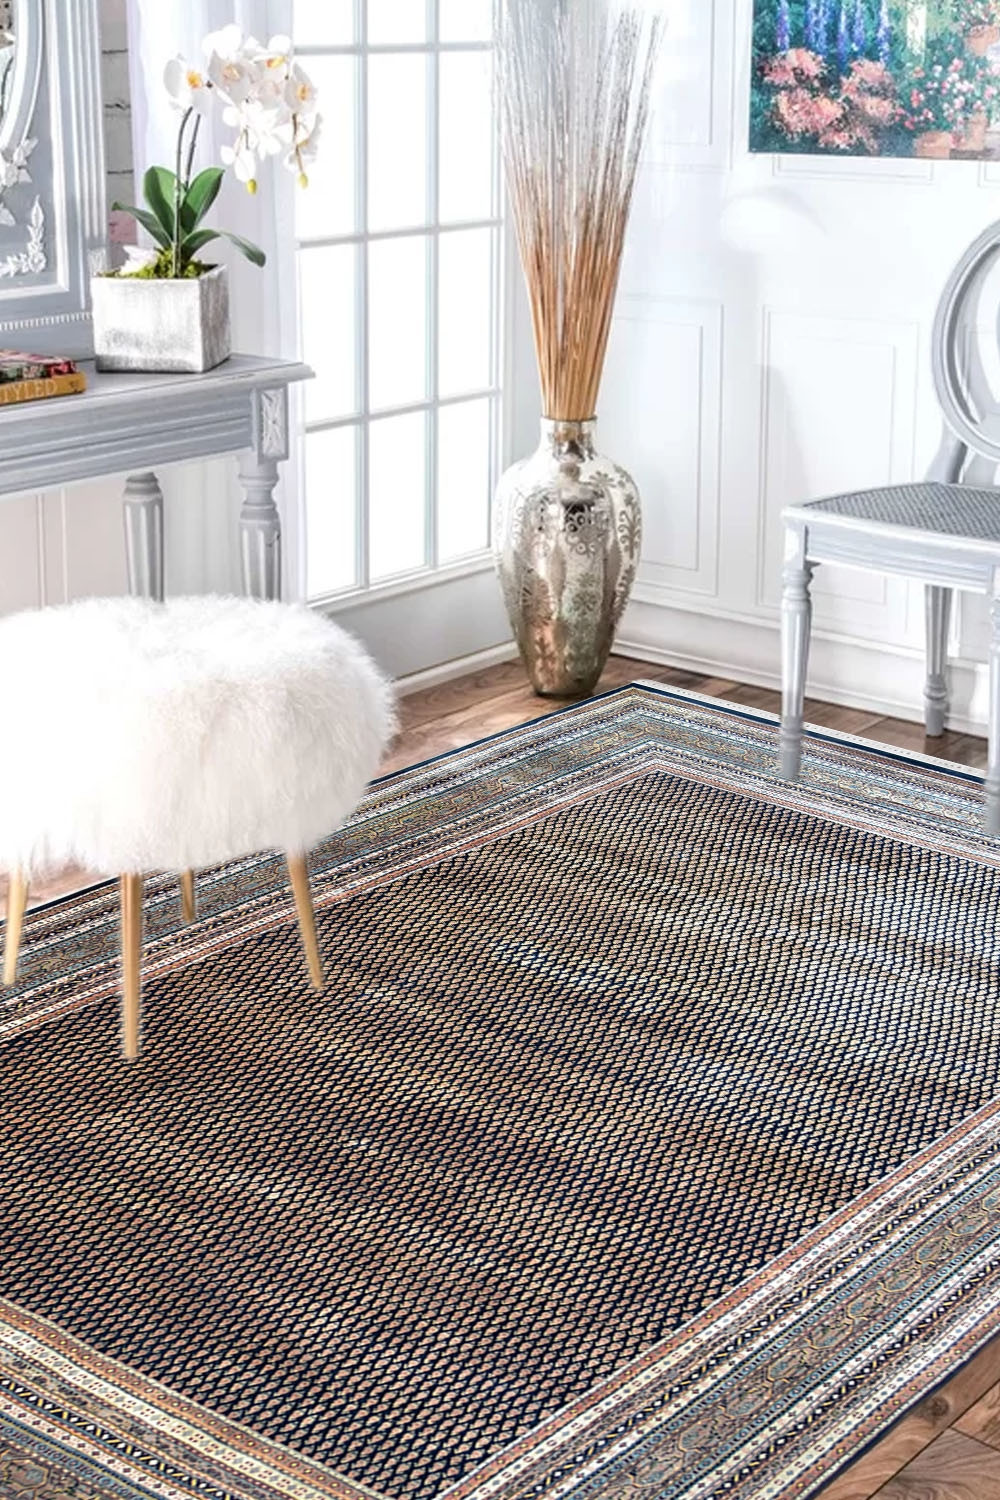 Buy Rugs Online And Snake Print Pure Wool And Cotton